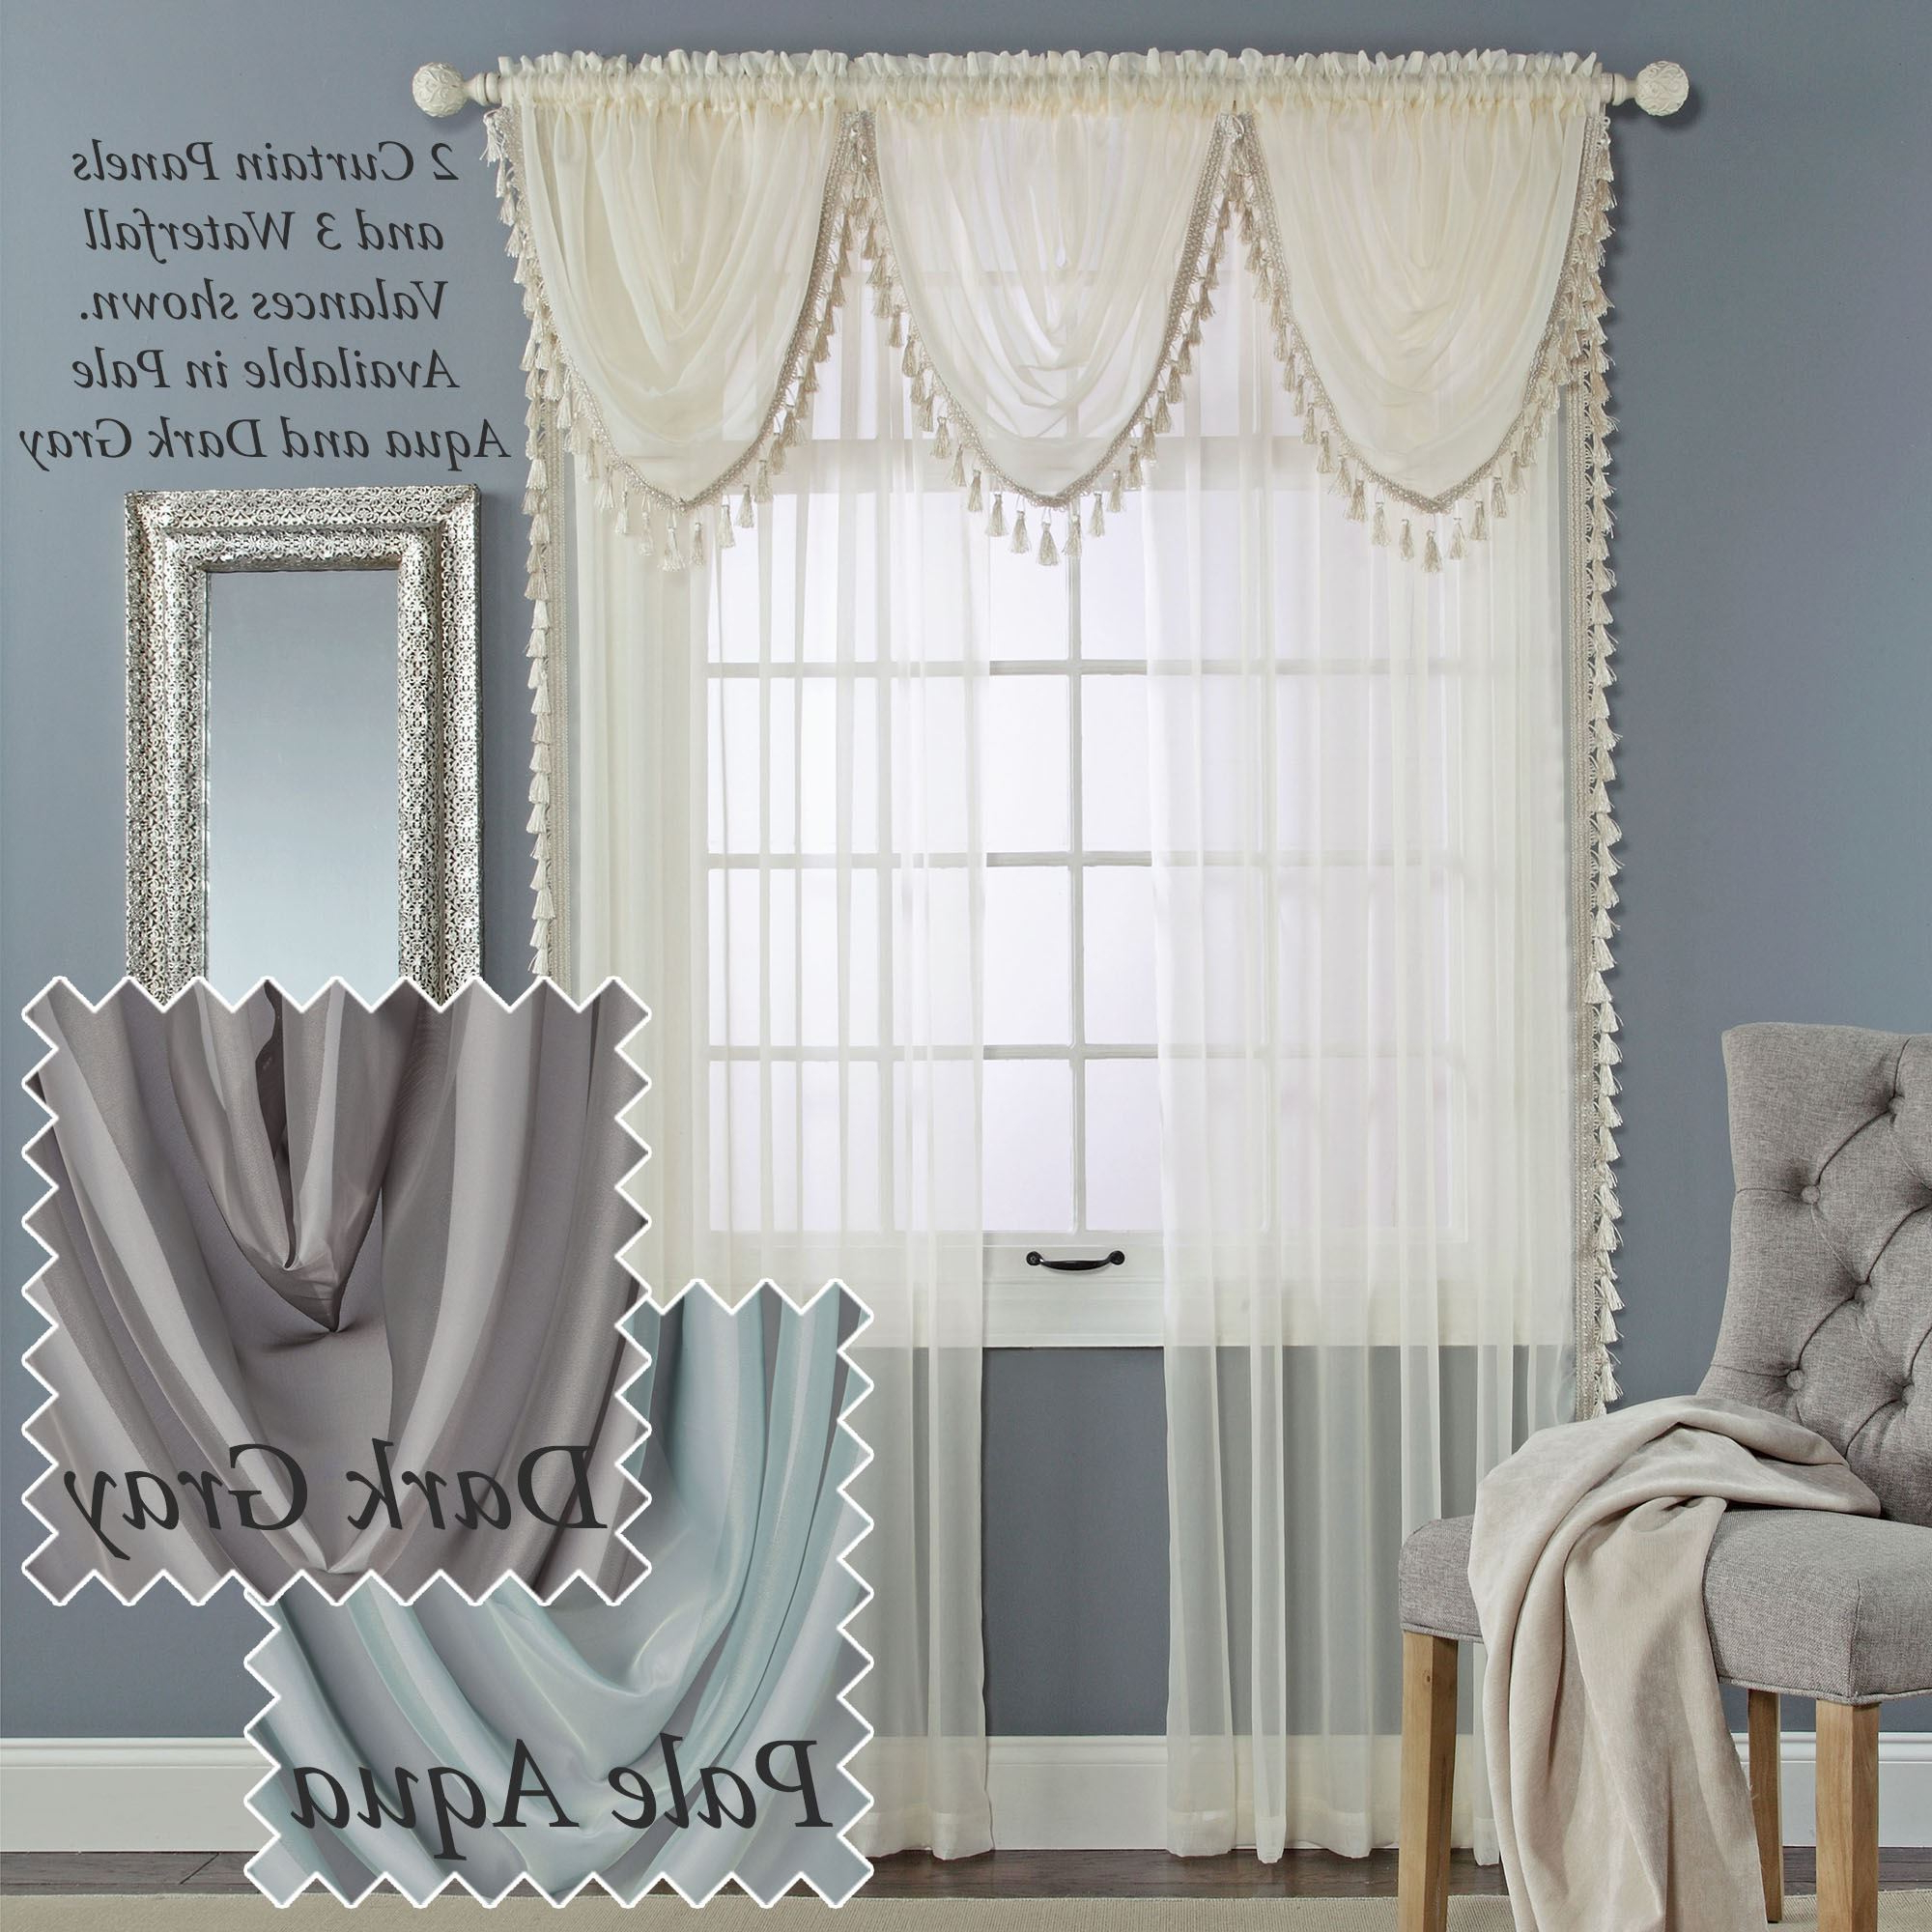 Sheer Voile Waterfall Ruffled Tier Single Curtain Panels Within Preferred Charlotte Sheer Voile Window Treatment (View 17 of 20)